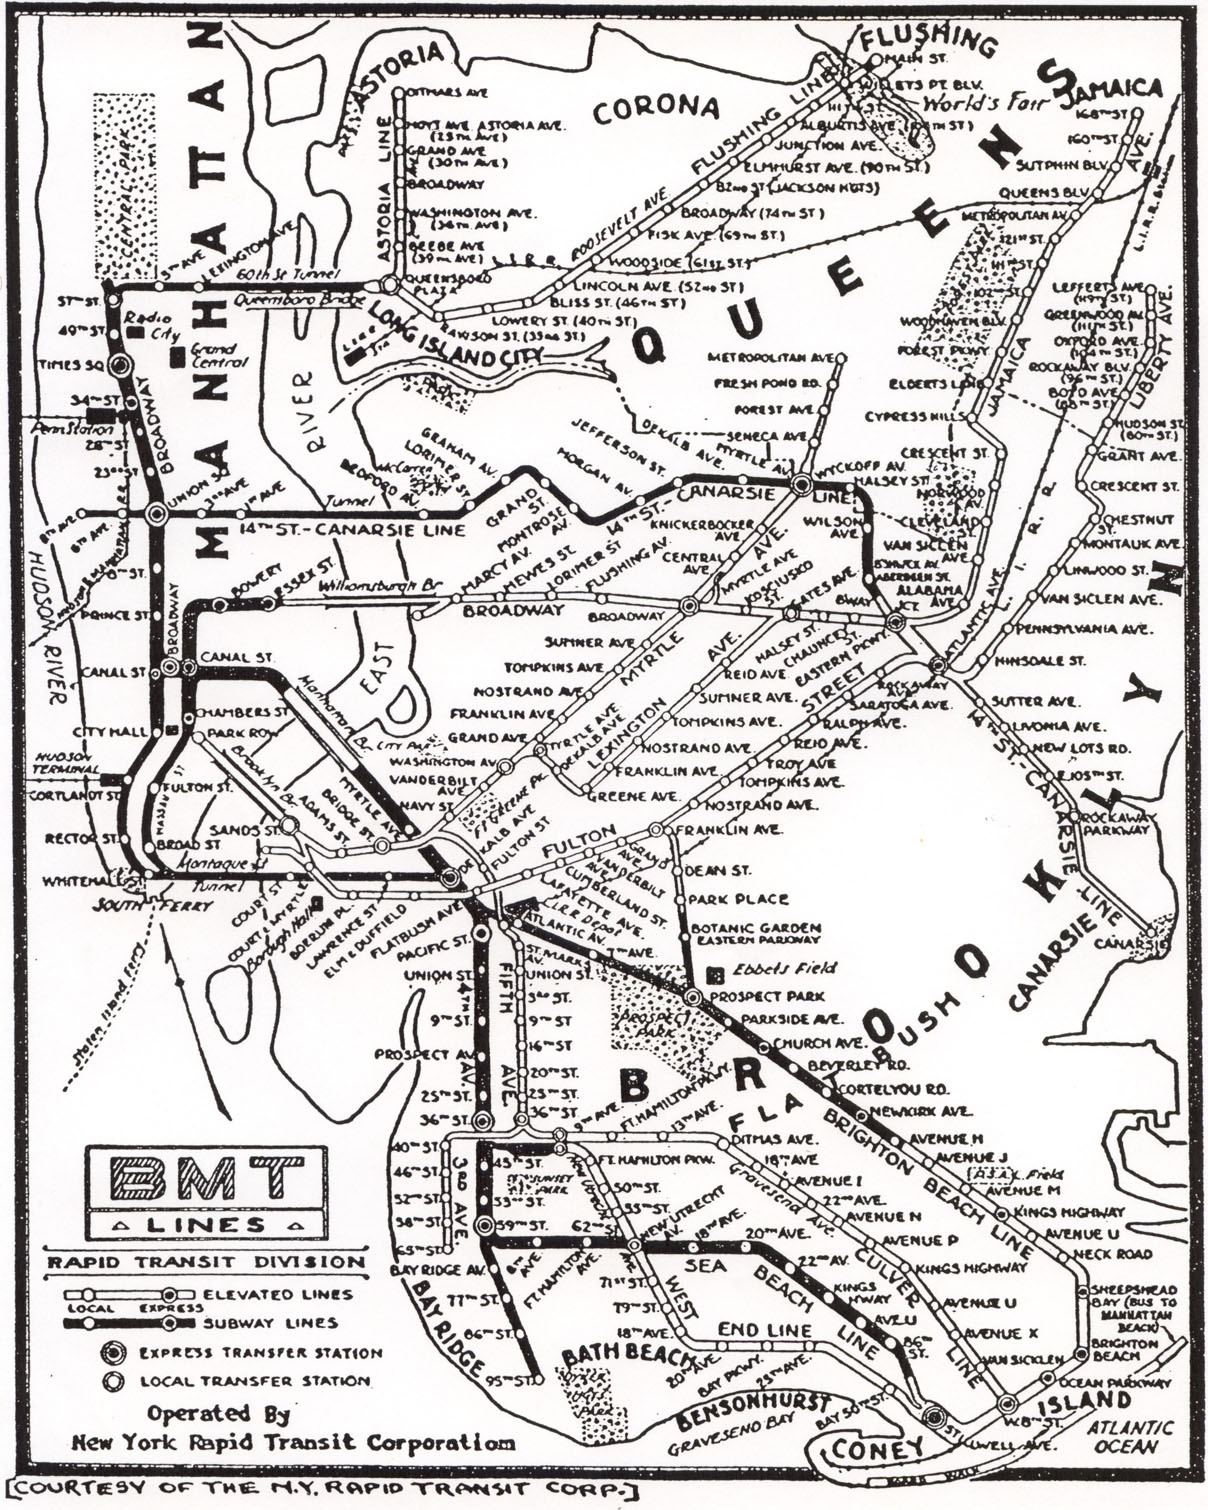 Custom Art Nyc Subway Map.Nyc Subway Drawing At Getdrawings Com Free For Personal Use Nyc